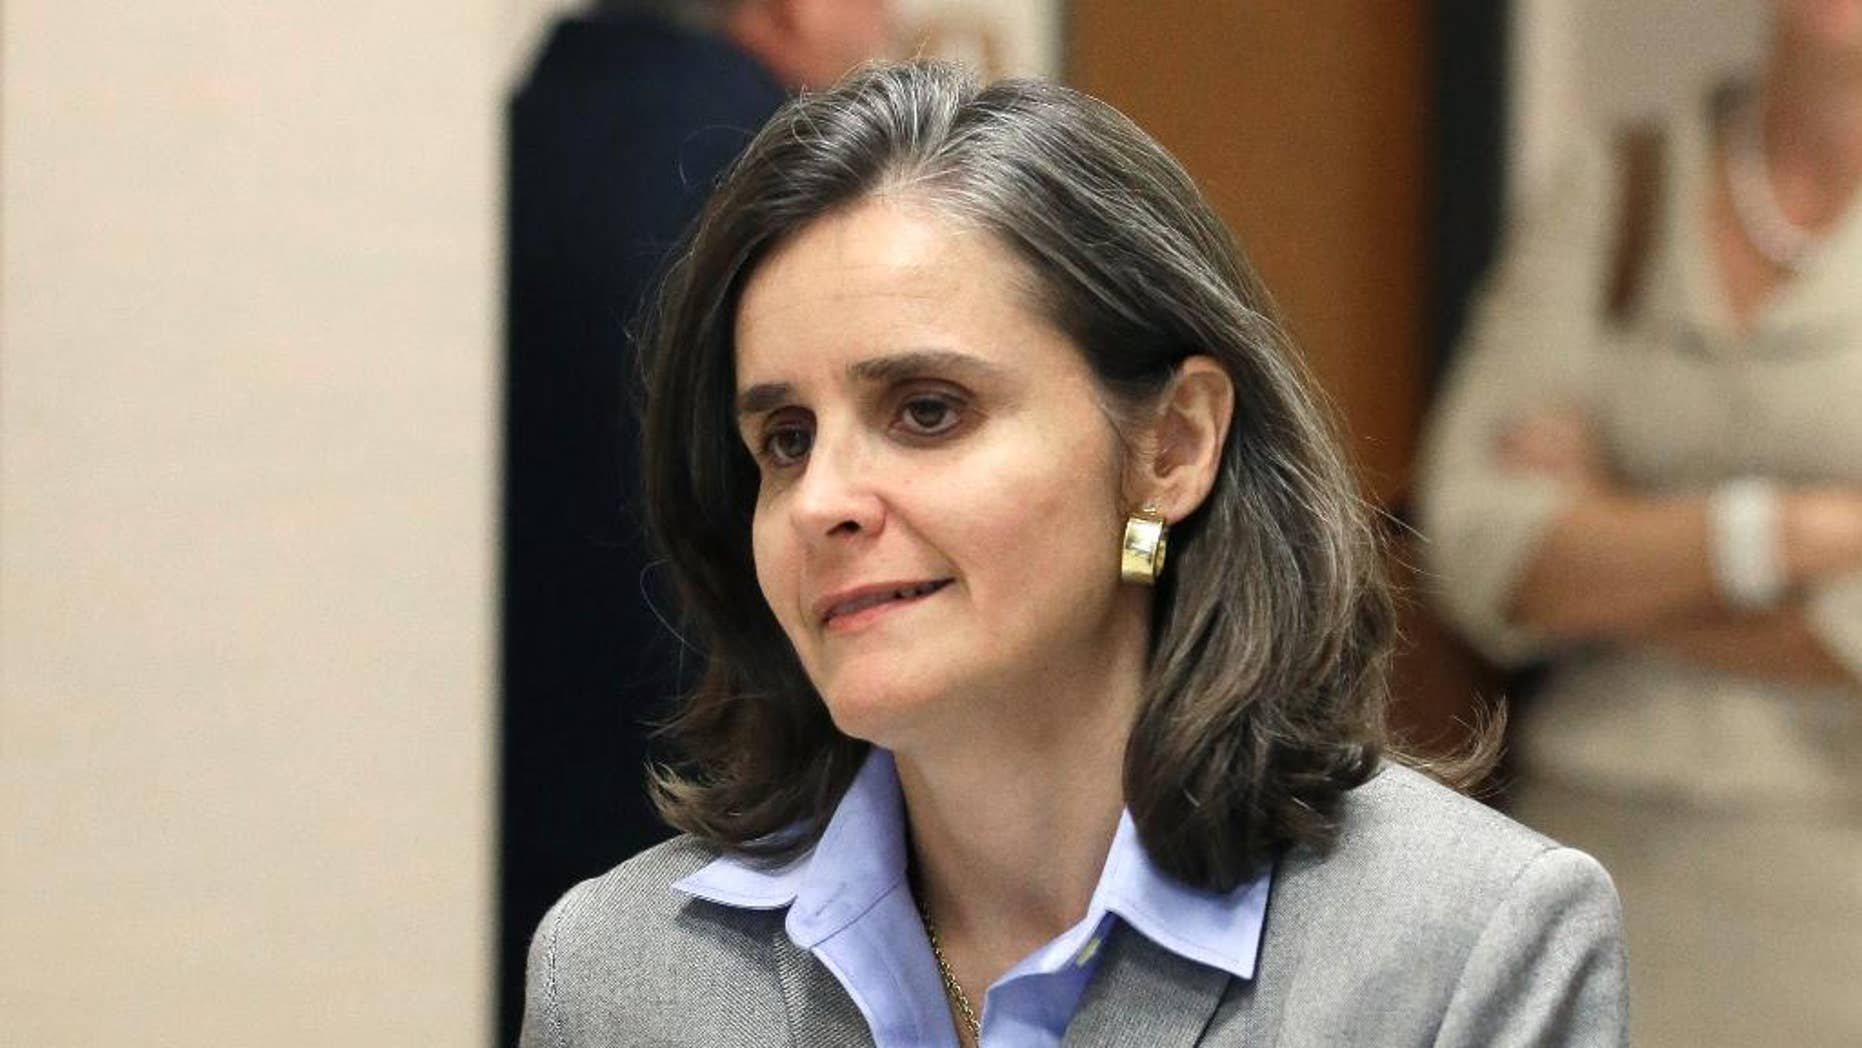 Dr. Ana Maria Gonzalez-Angulo takes a break from the courtroom during jury deliberations in her assault case Wednesday, Sept. 24, 2014, in Houston. The breast cancer doctor is accused of poisoning a fellow physician boyfriend with coffee laced with ethylene glycol. The case has gone to the jury, deliberations will continue Friday. (AP Photo/Pat Sullivan)